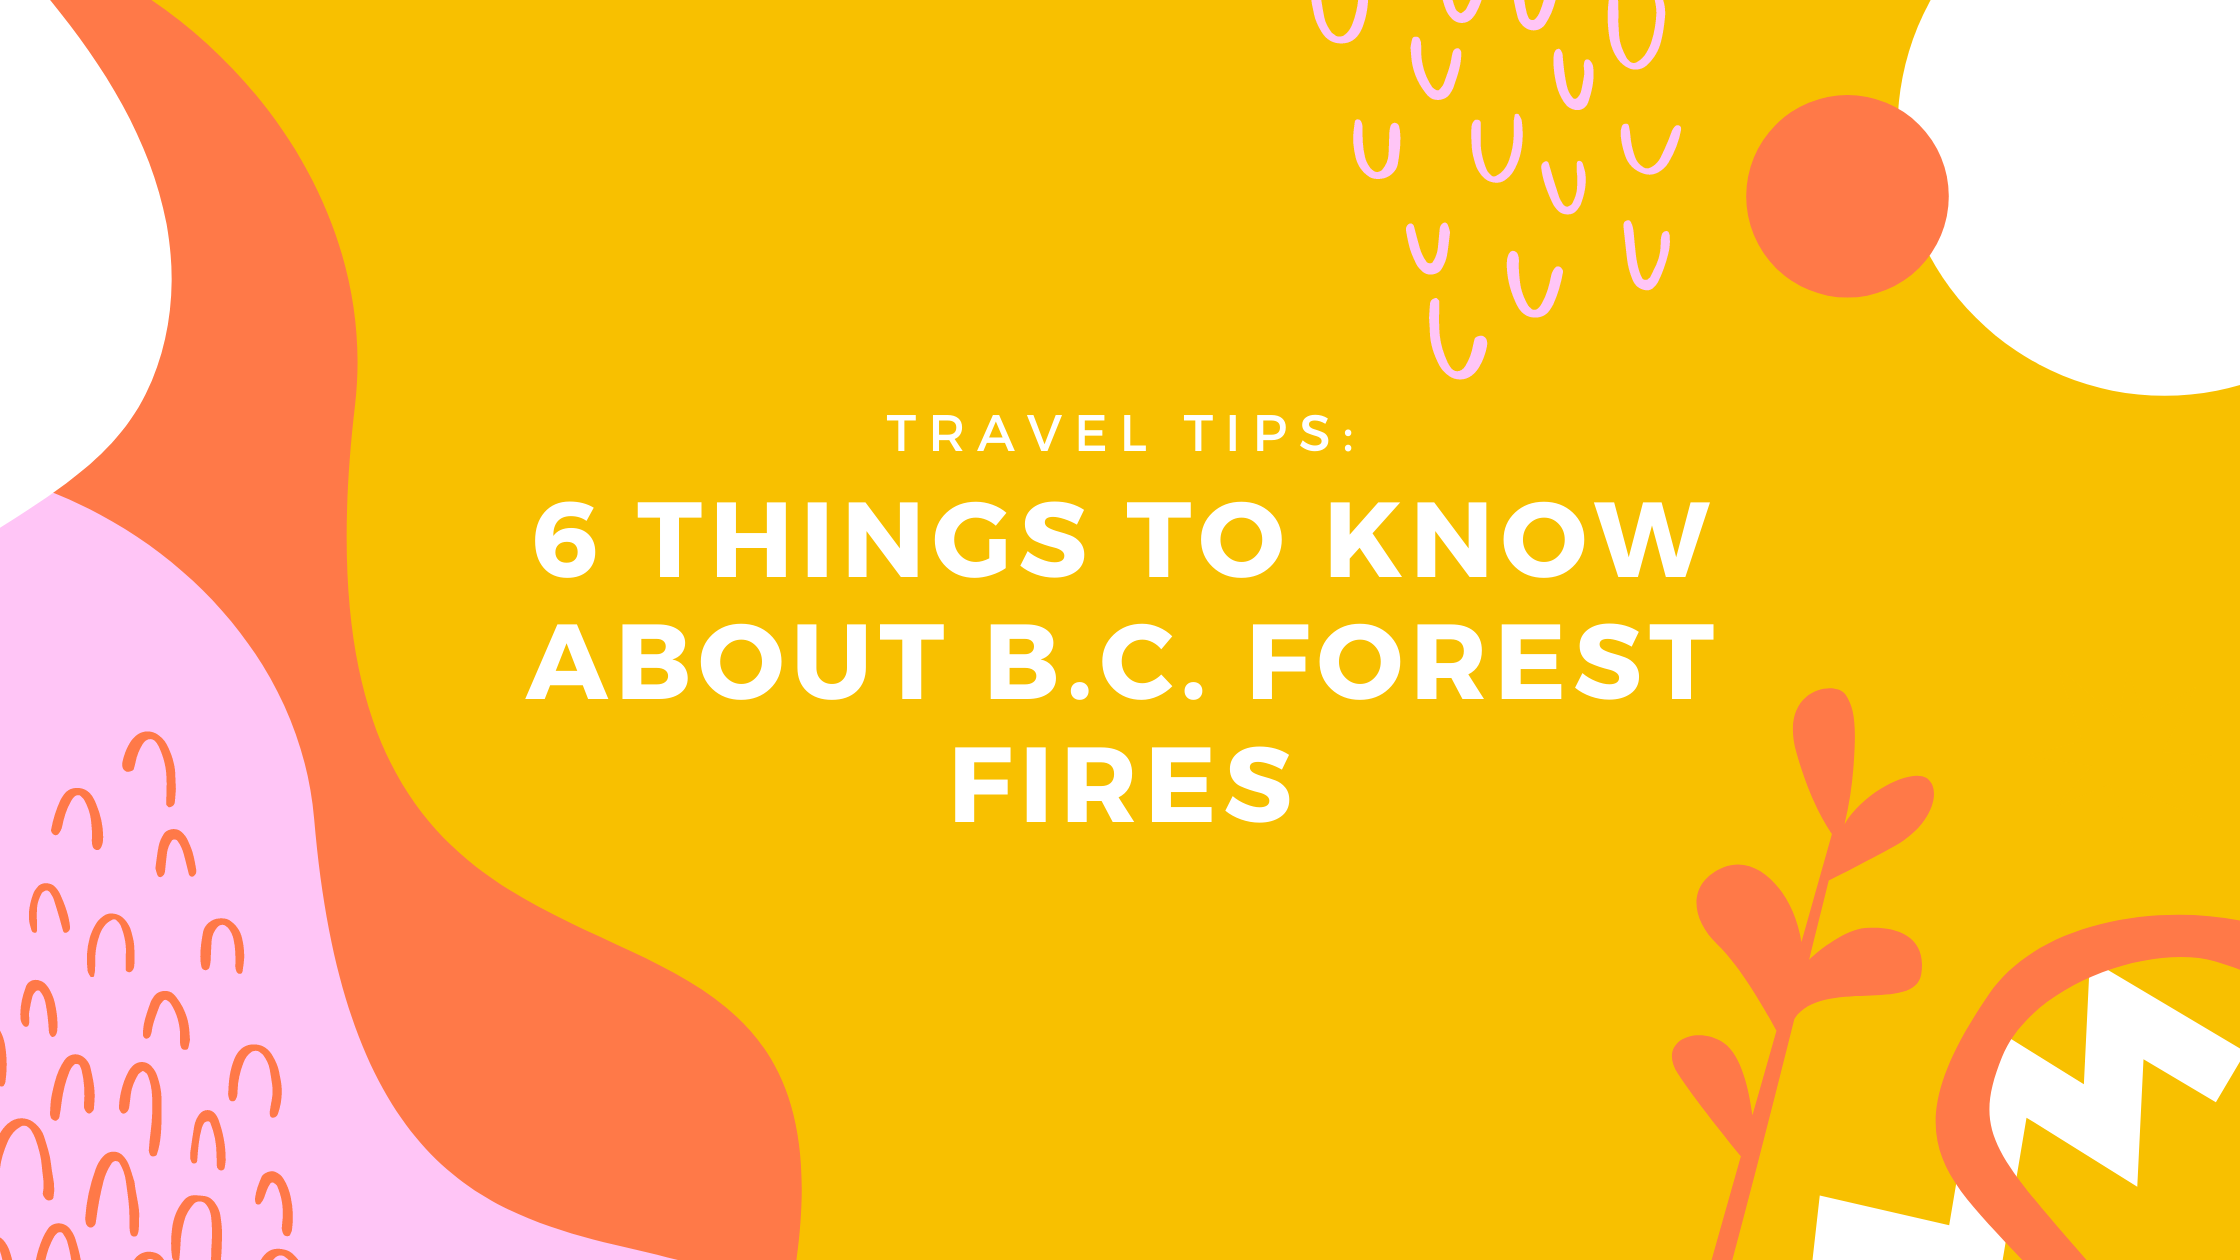 B.C. Forest Fires